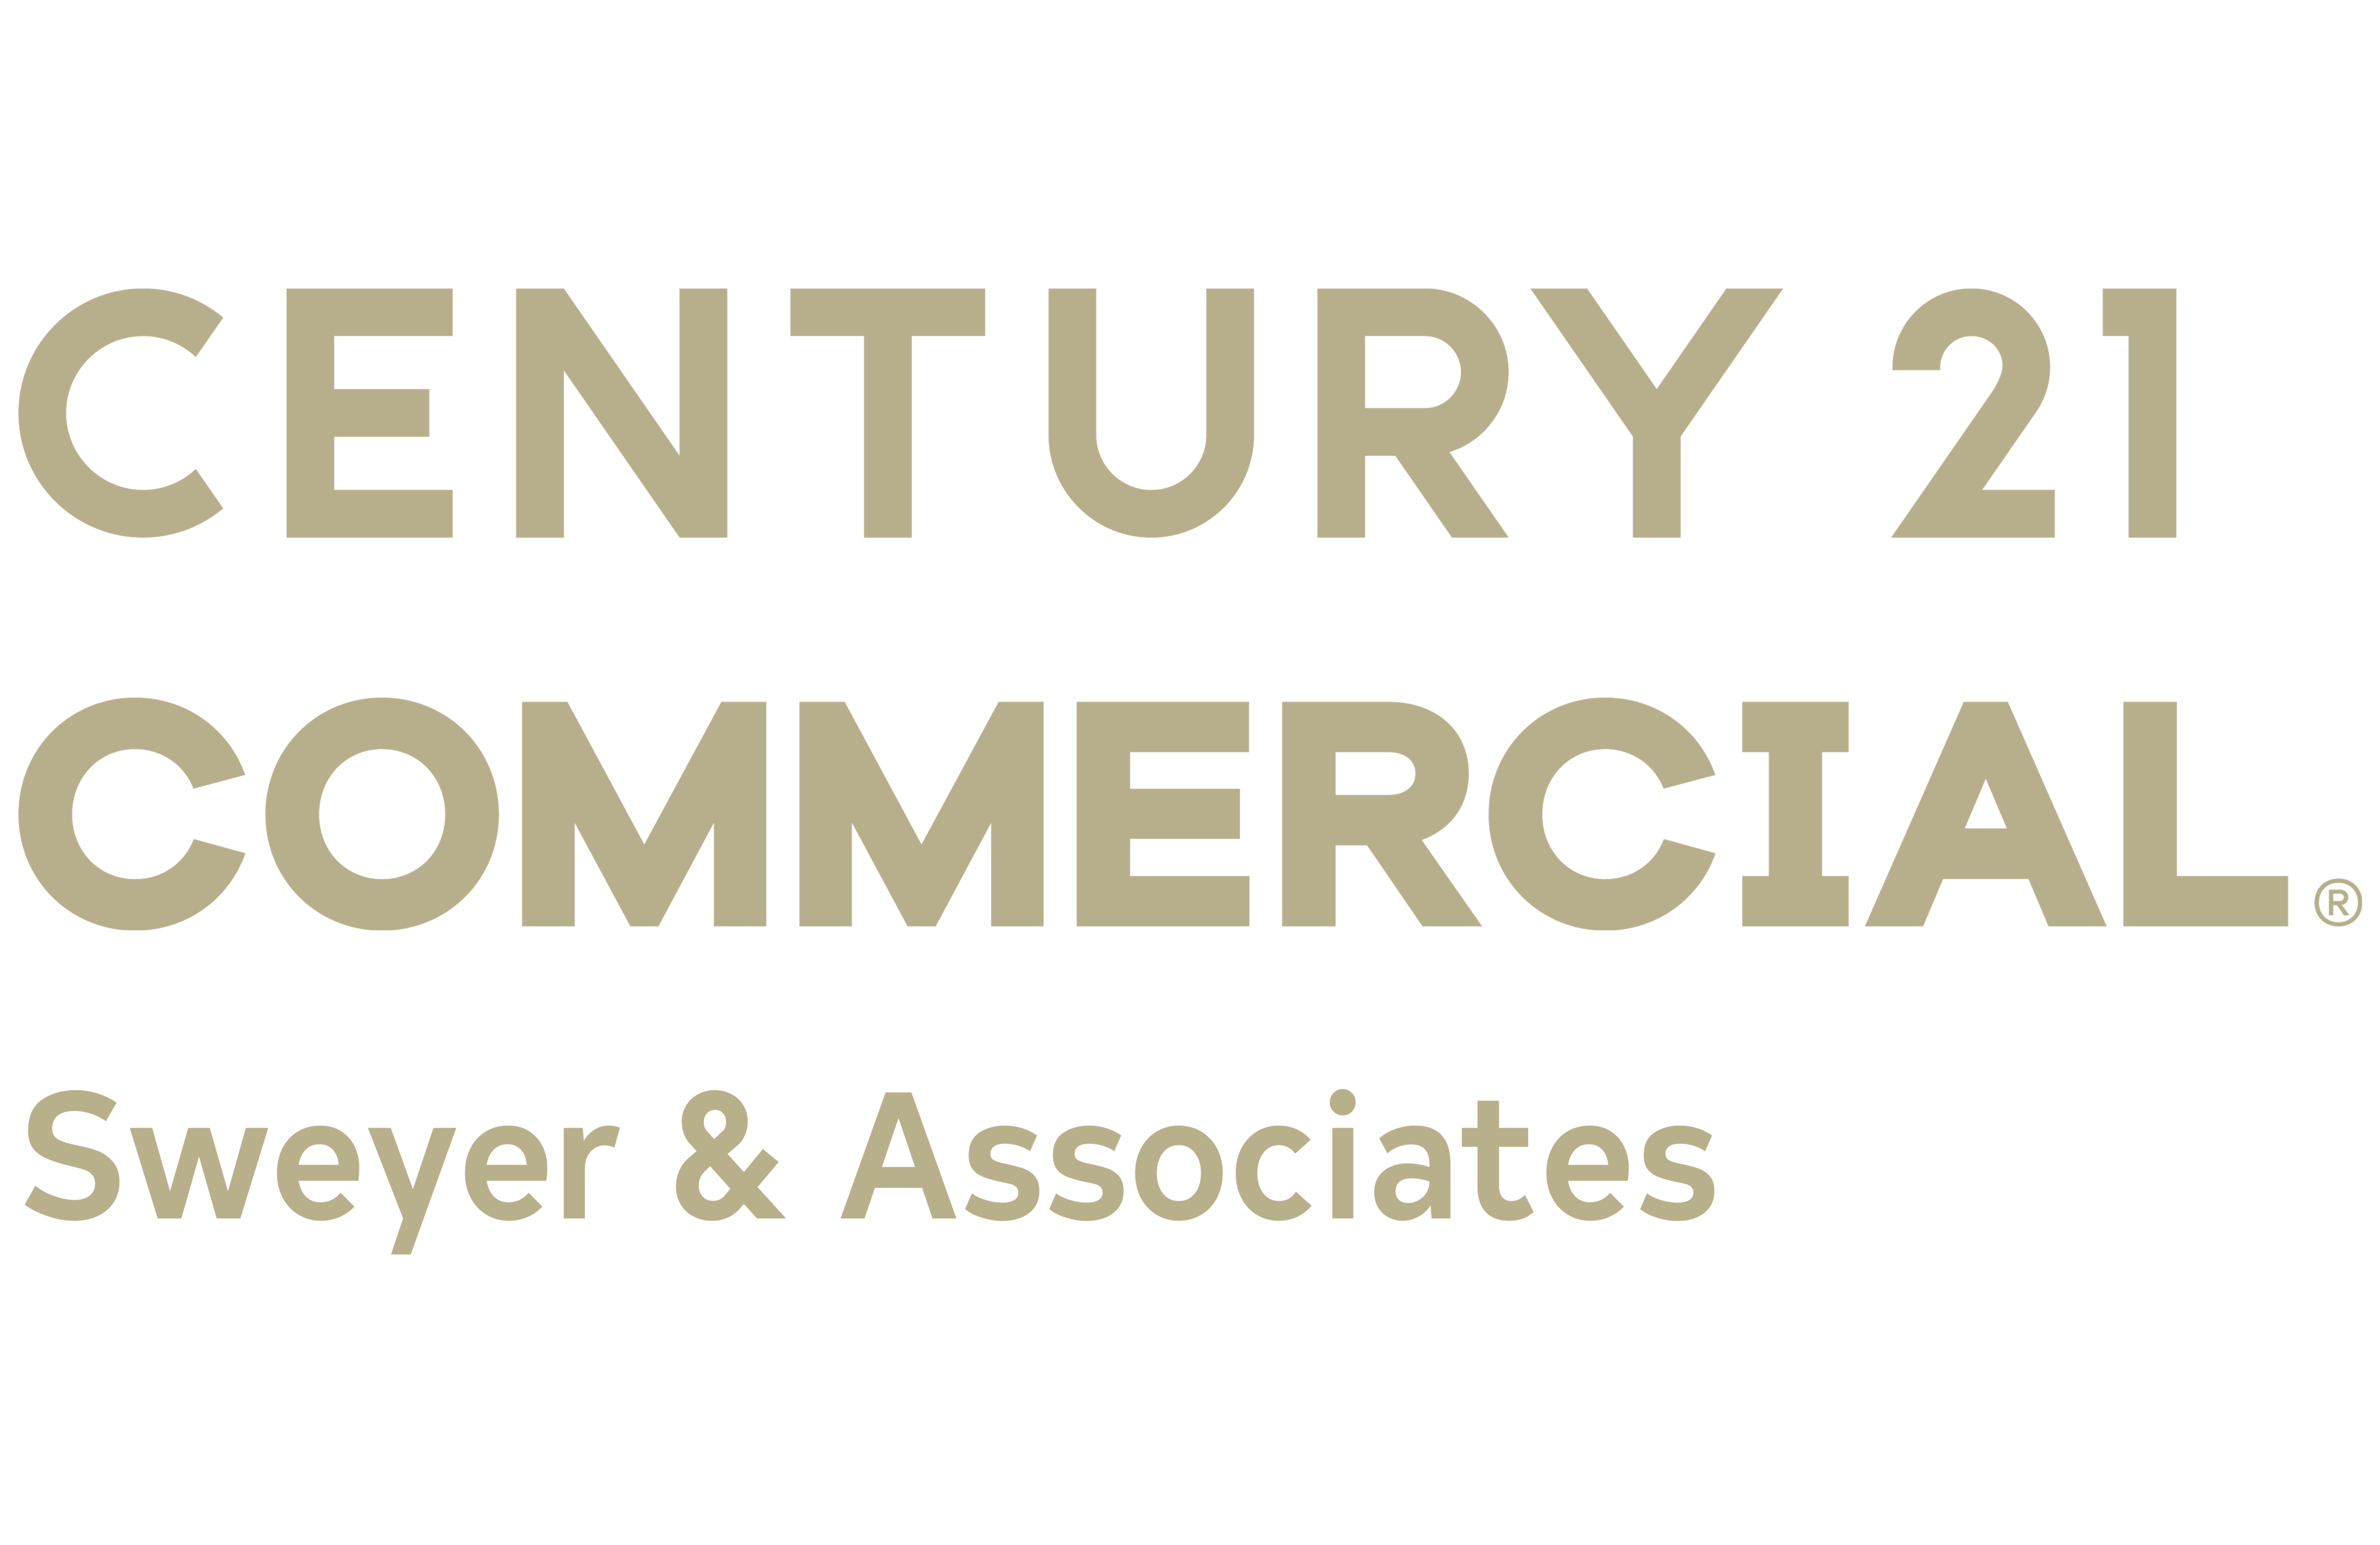 Scott Morrison of CENTURY 21 Sweyer & Associates logo